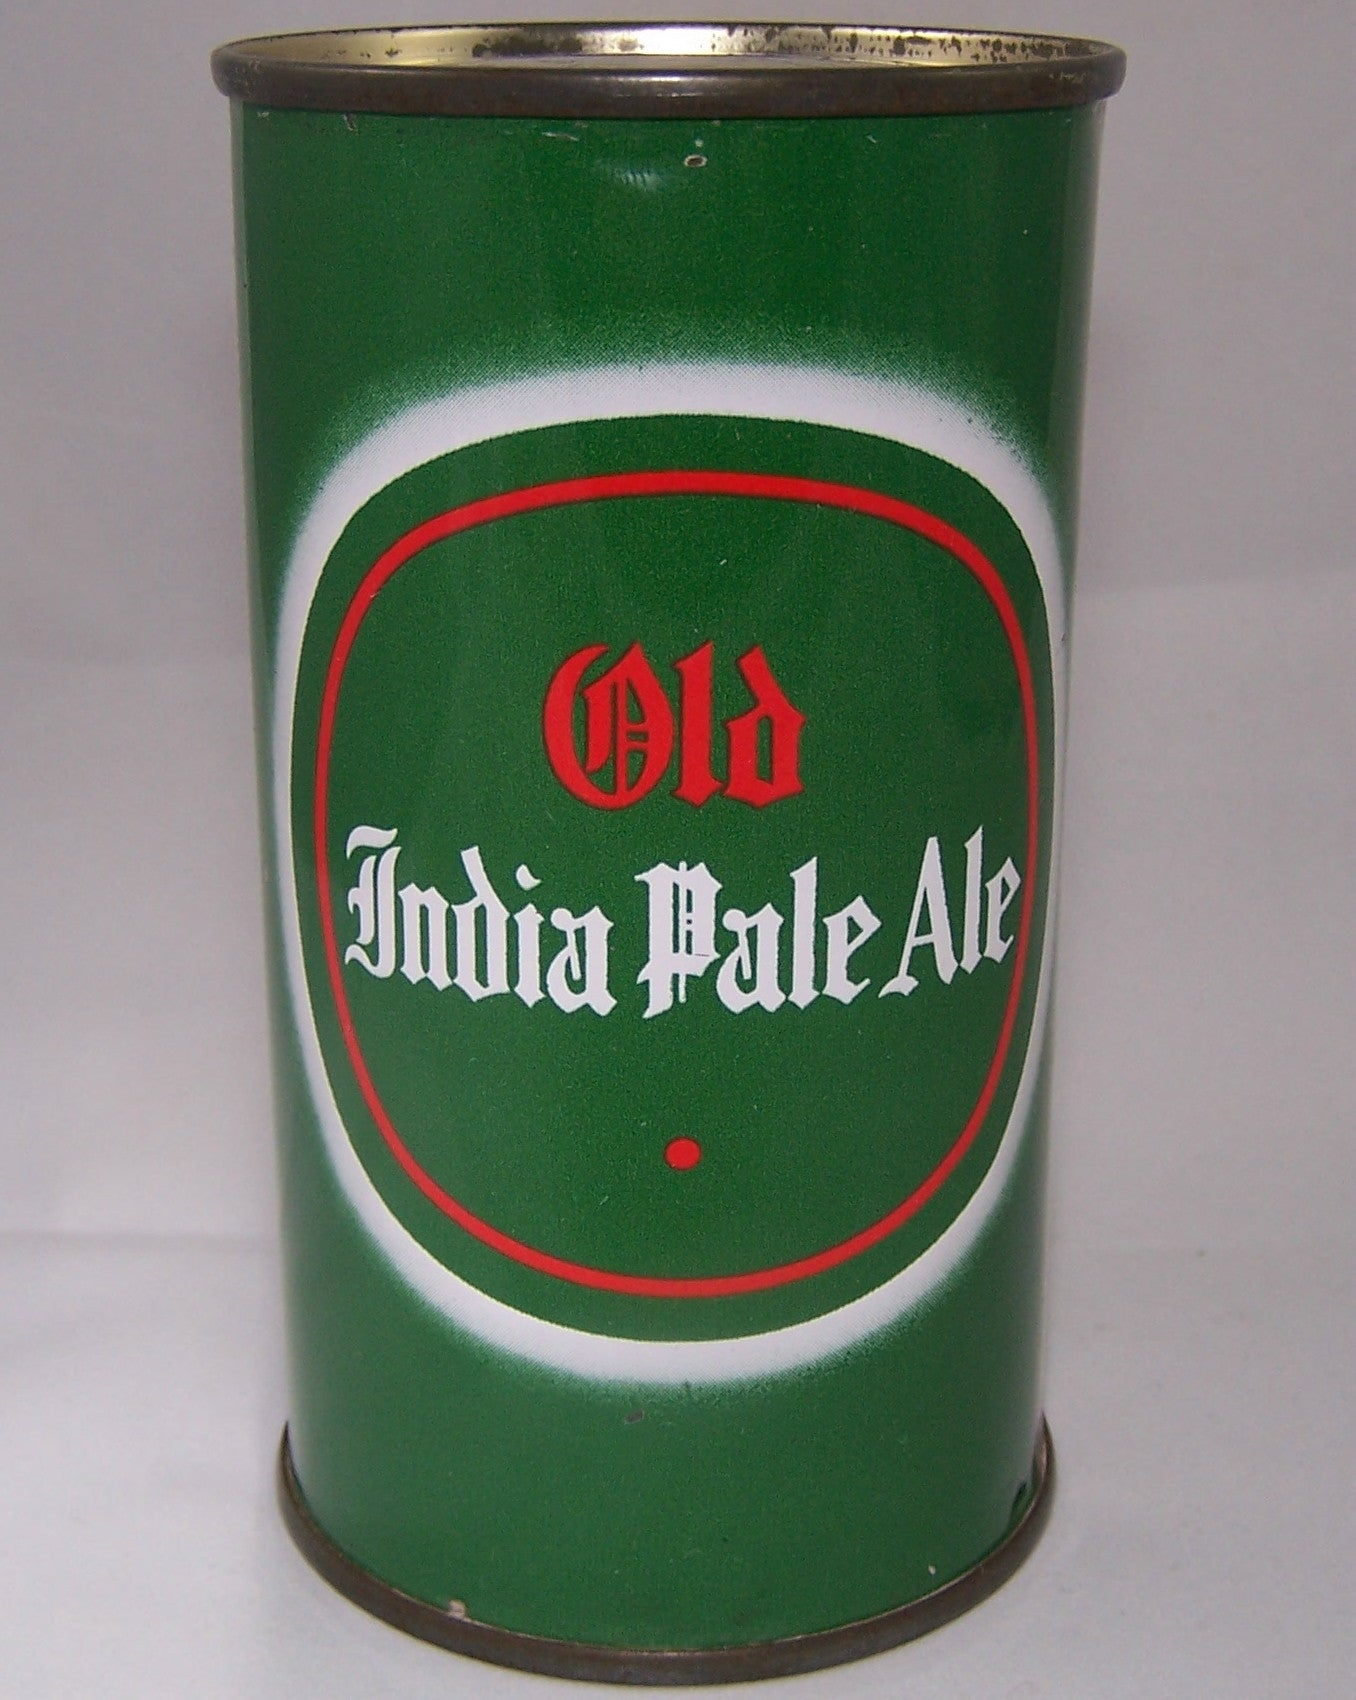 Old India Pale Ale, USBC 107-12, Grade 1/1+ Sold on 10/22/15